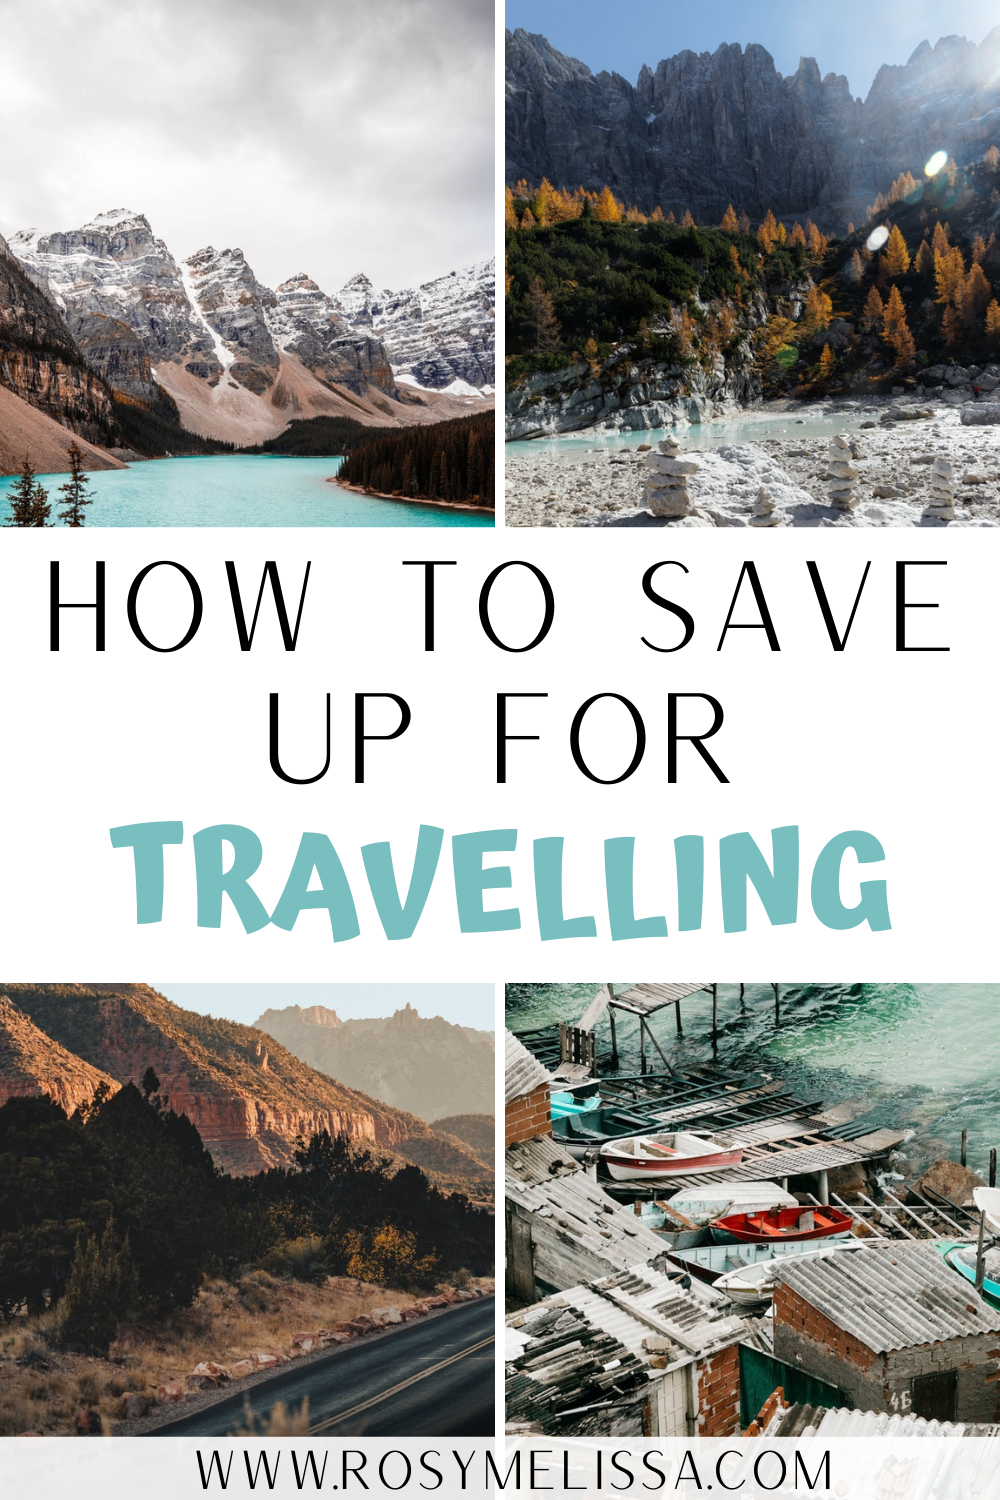 save up for travel, how to save up for travelling, 10 things to stop buying to save up for travel, money saving tips, travel tips